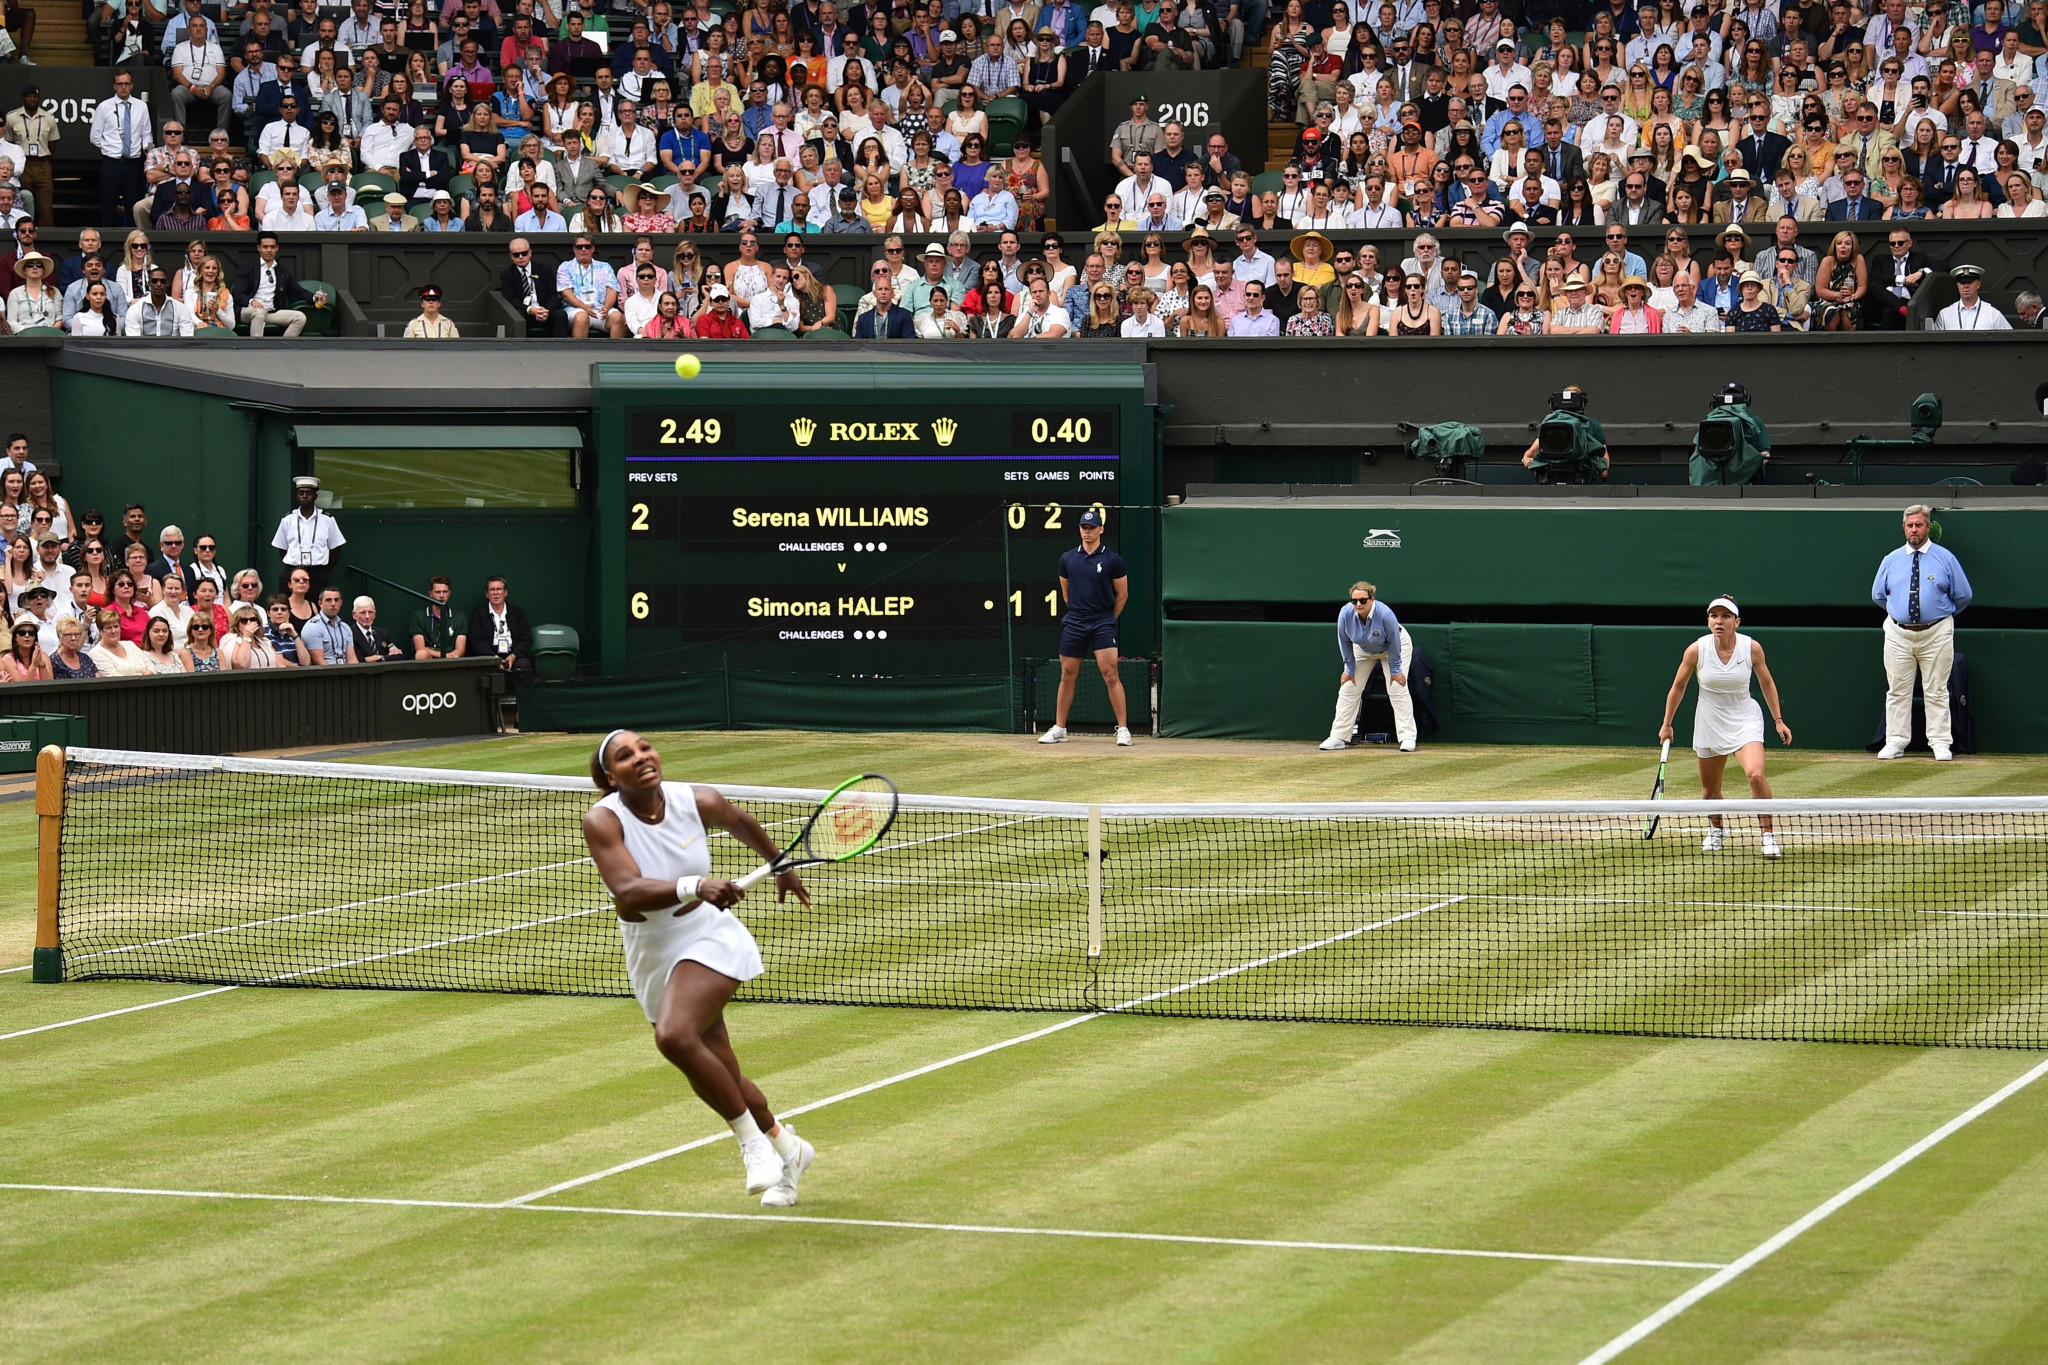 Wimbledon is set to operate at 25 per cent capacity when it starts on June 28 ©Getty Images